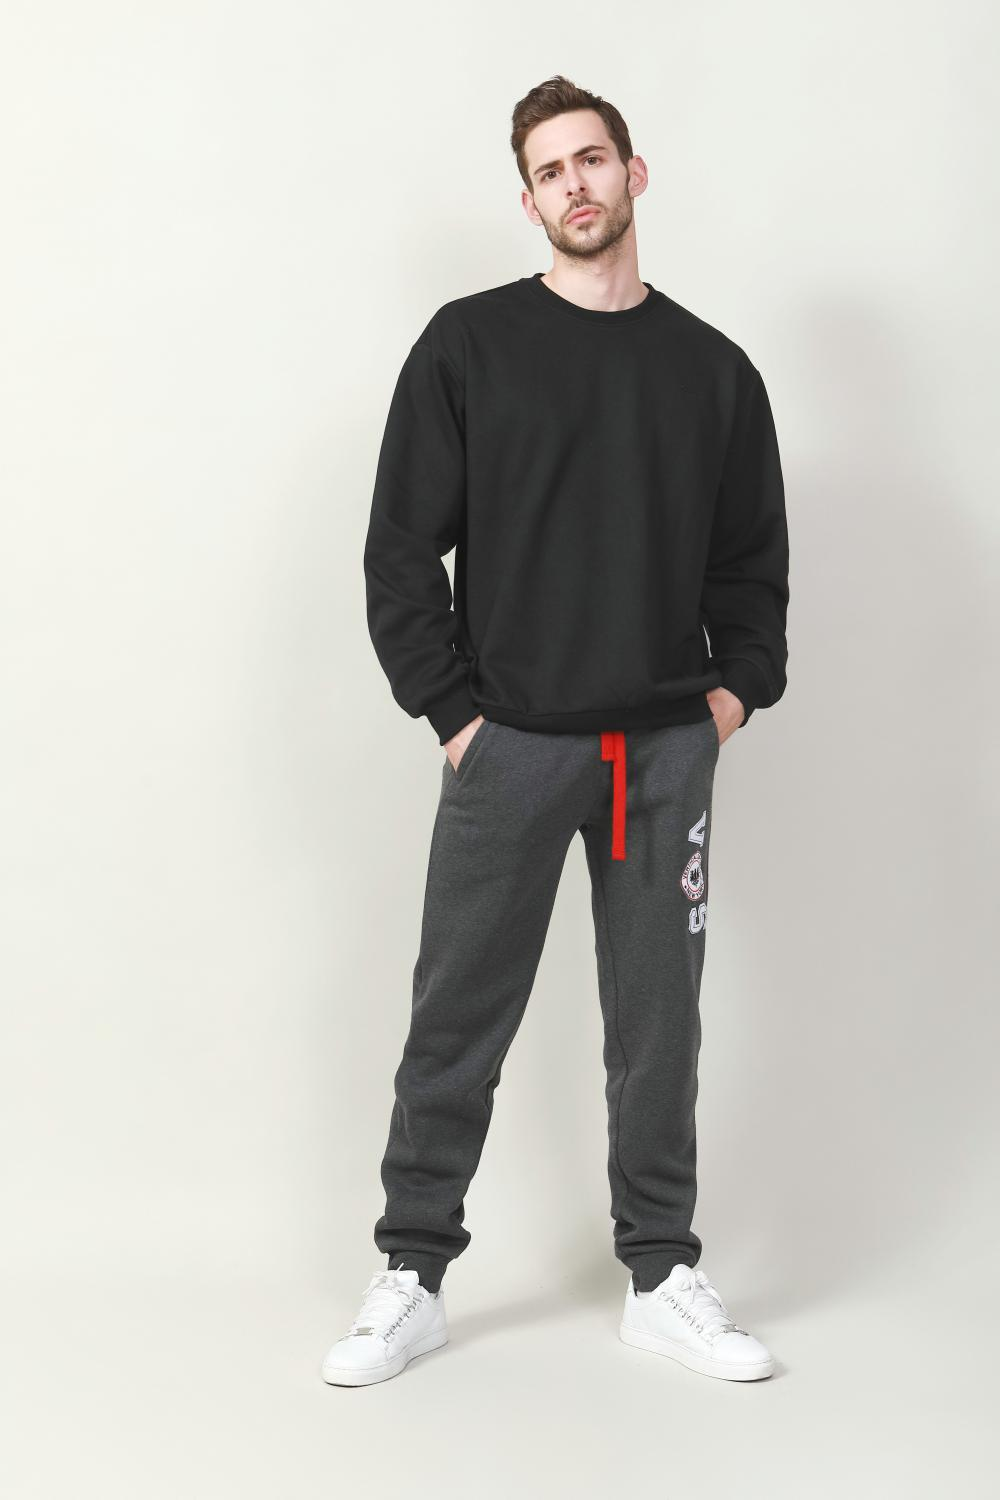 Men's fashion track pants